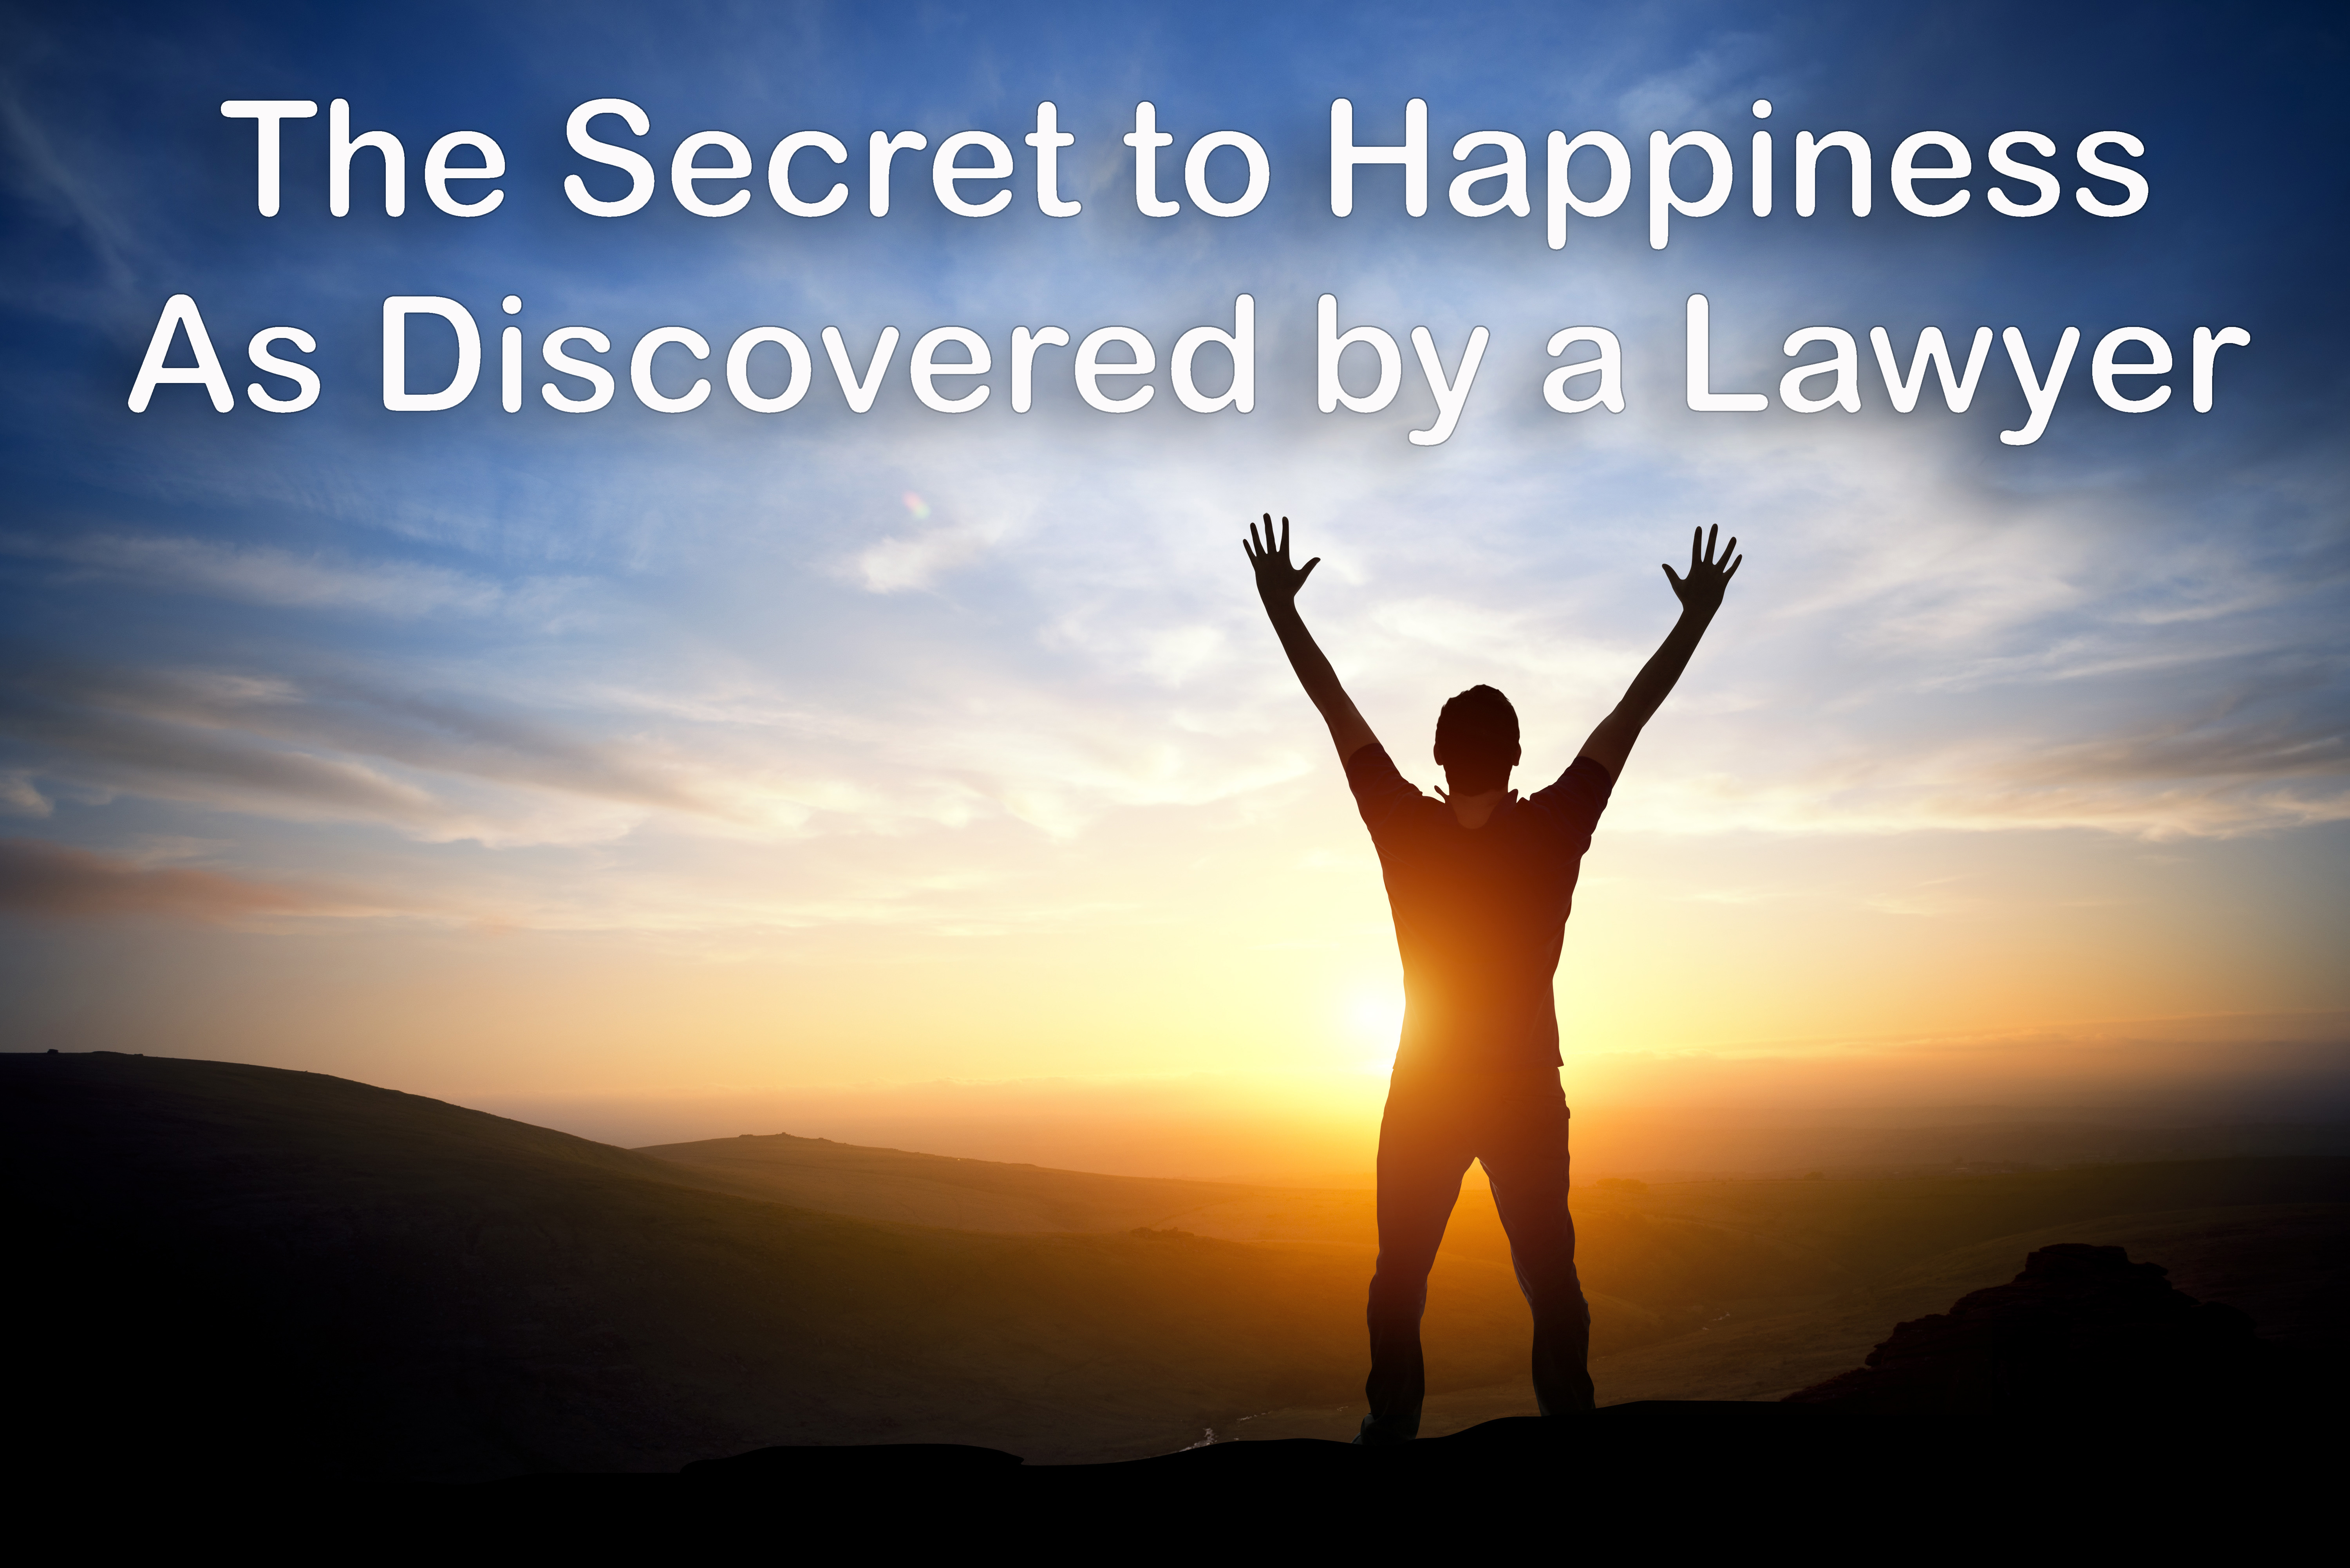 A Lawyer's Secret To A Happy Life